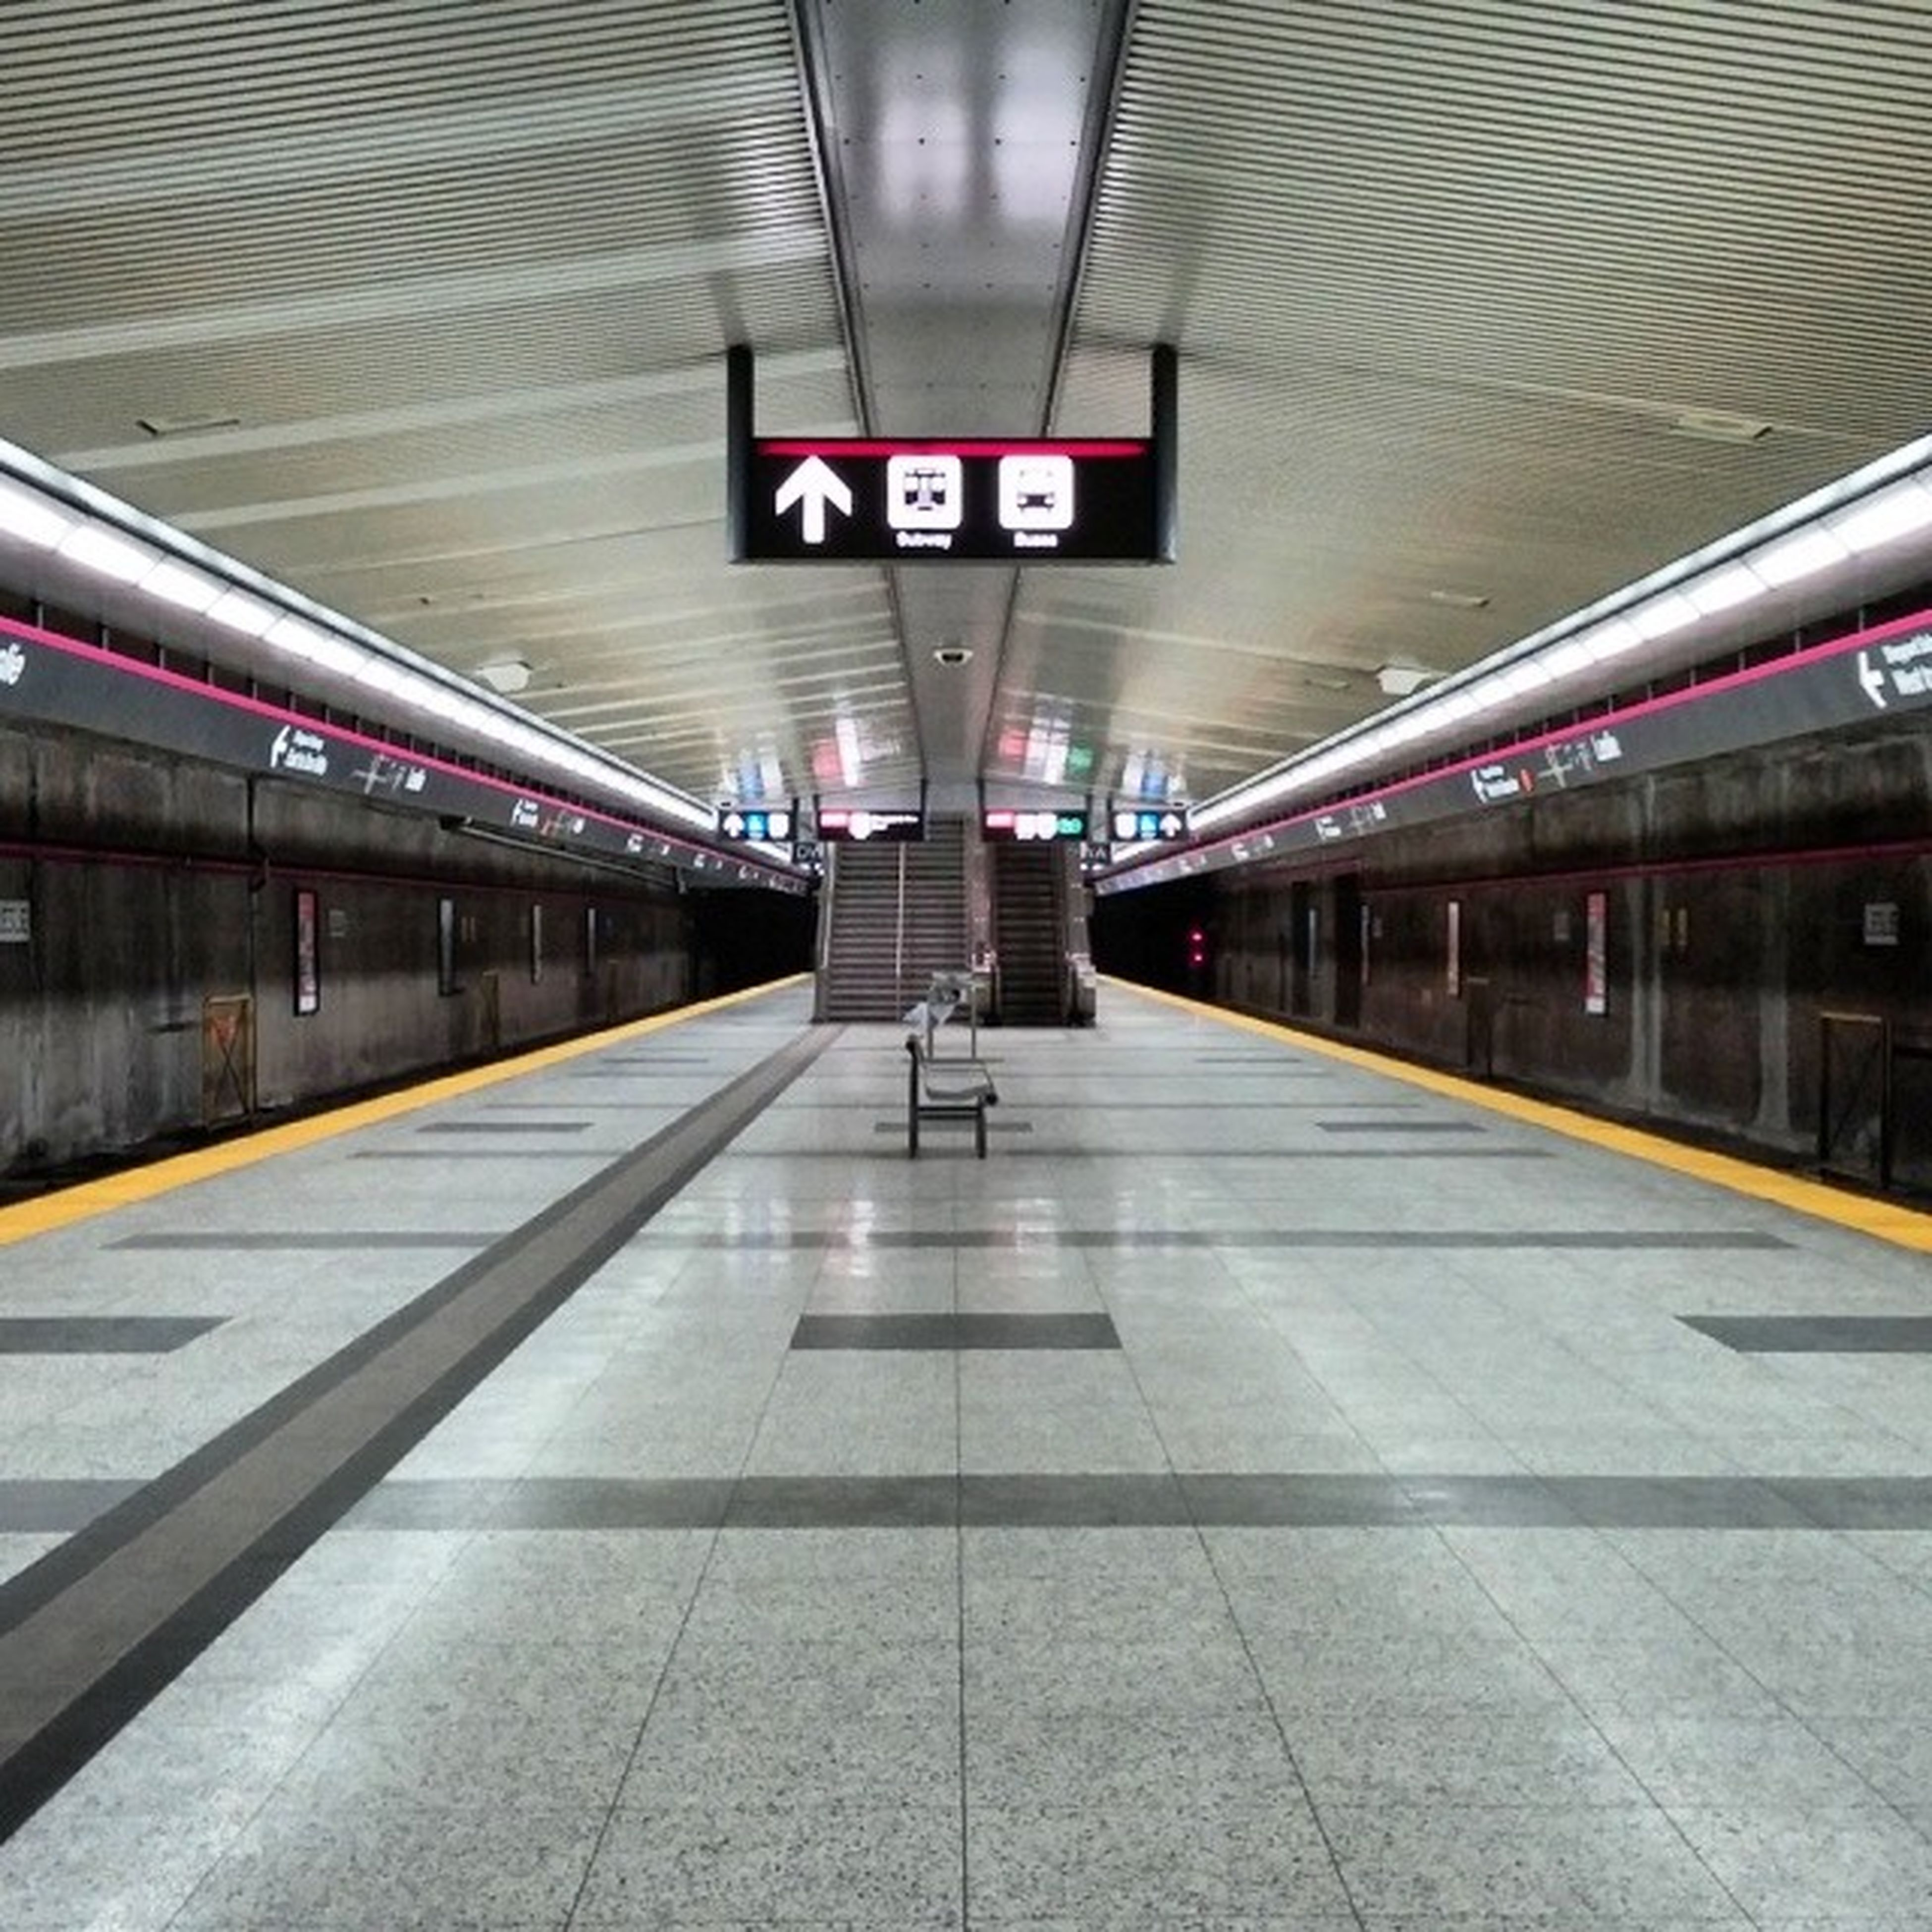 indoors, railroad station, subway station, railroad station platform, public transportation, ceiling, subway, transportation, rail transportation, illuminated, interior, transportation building - type of building, empty, architecture, subway platform, travel, built structure, text, flooring, station